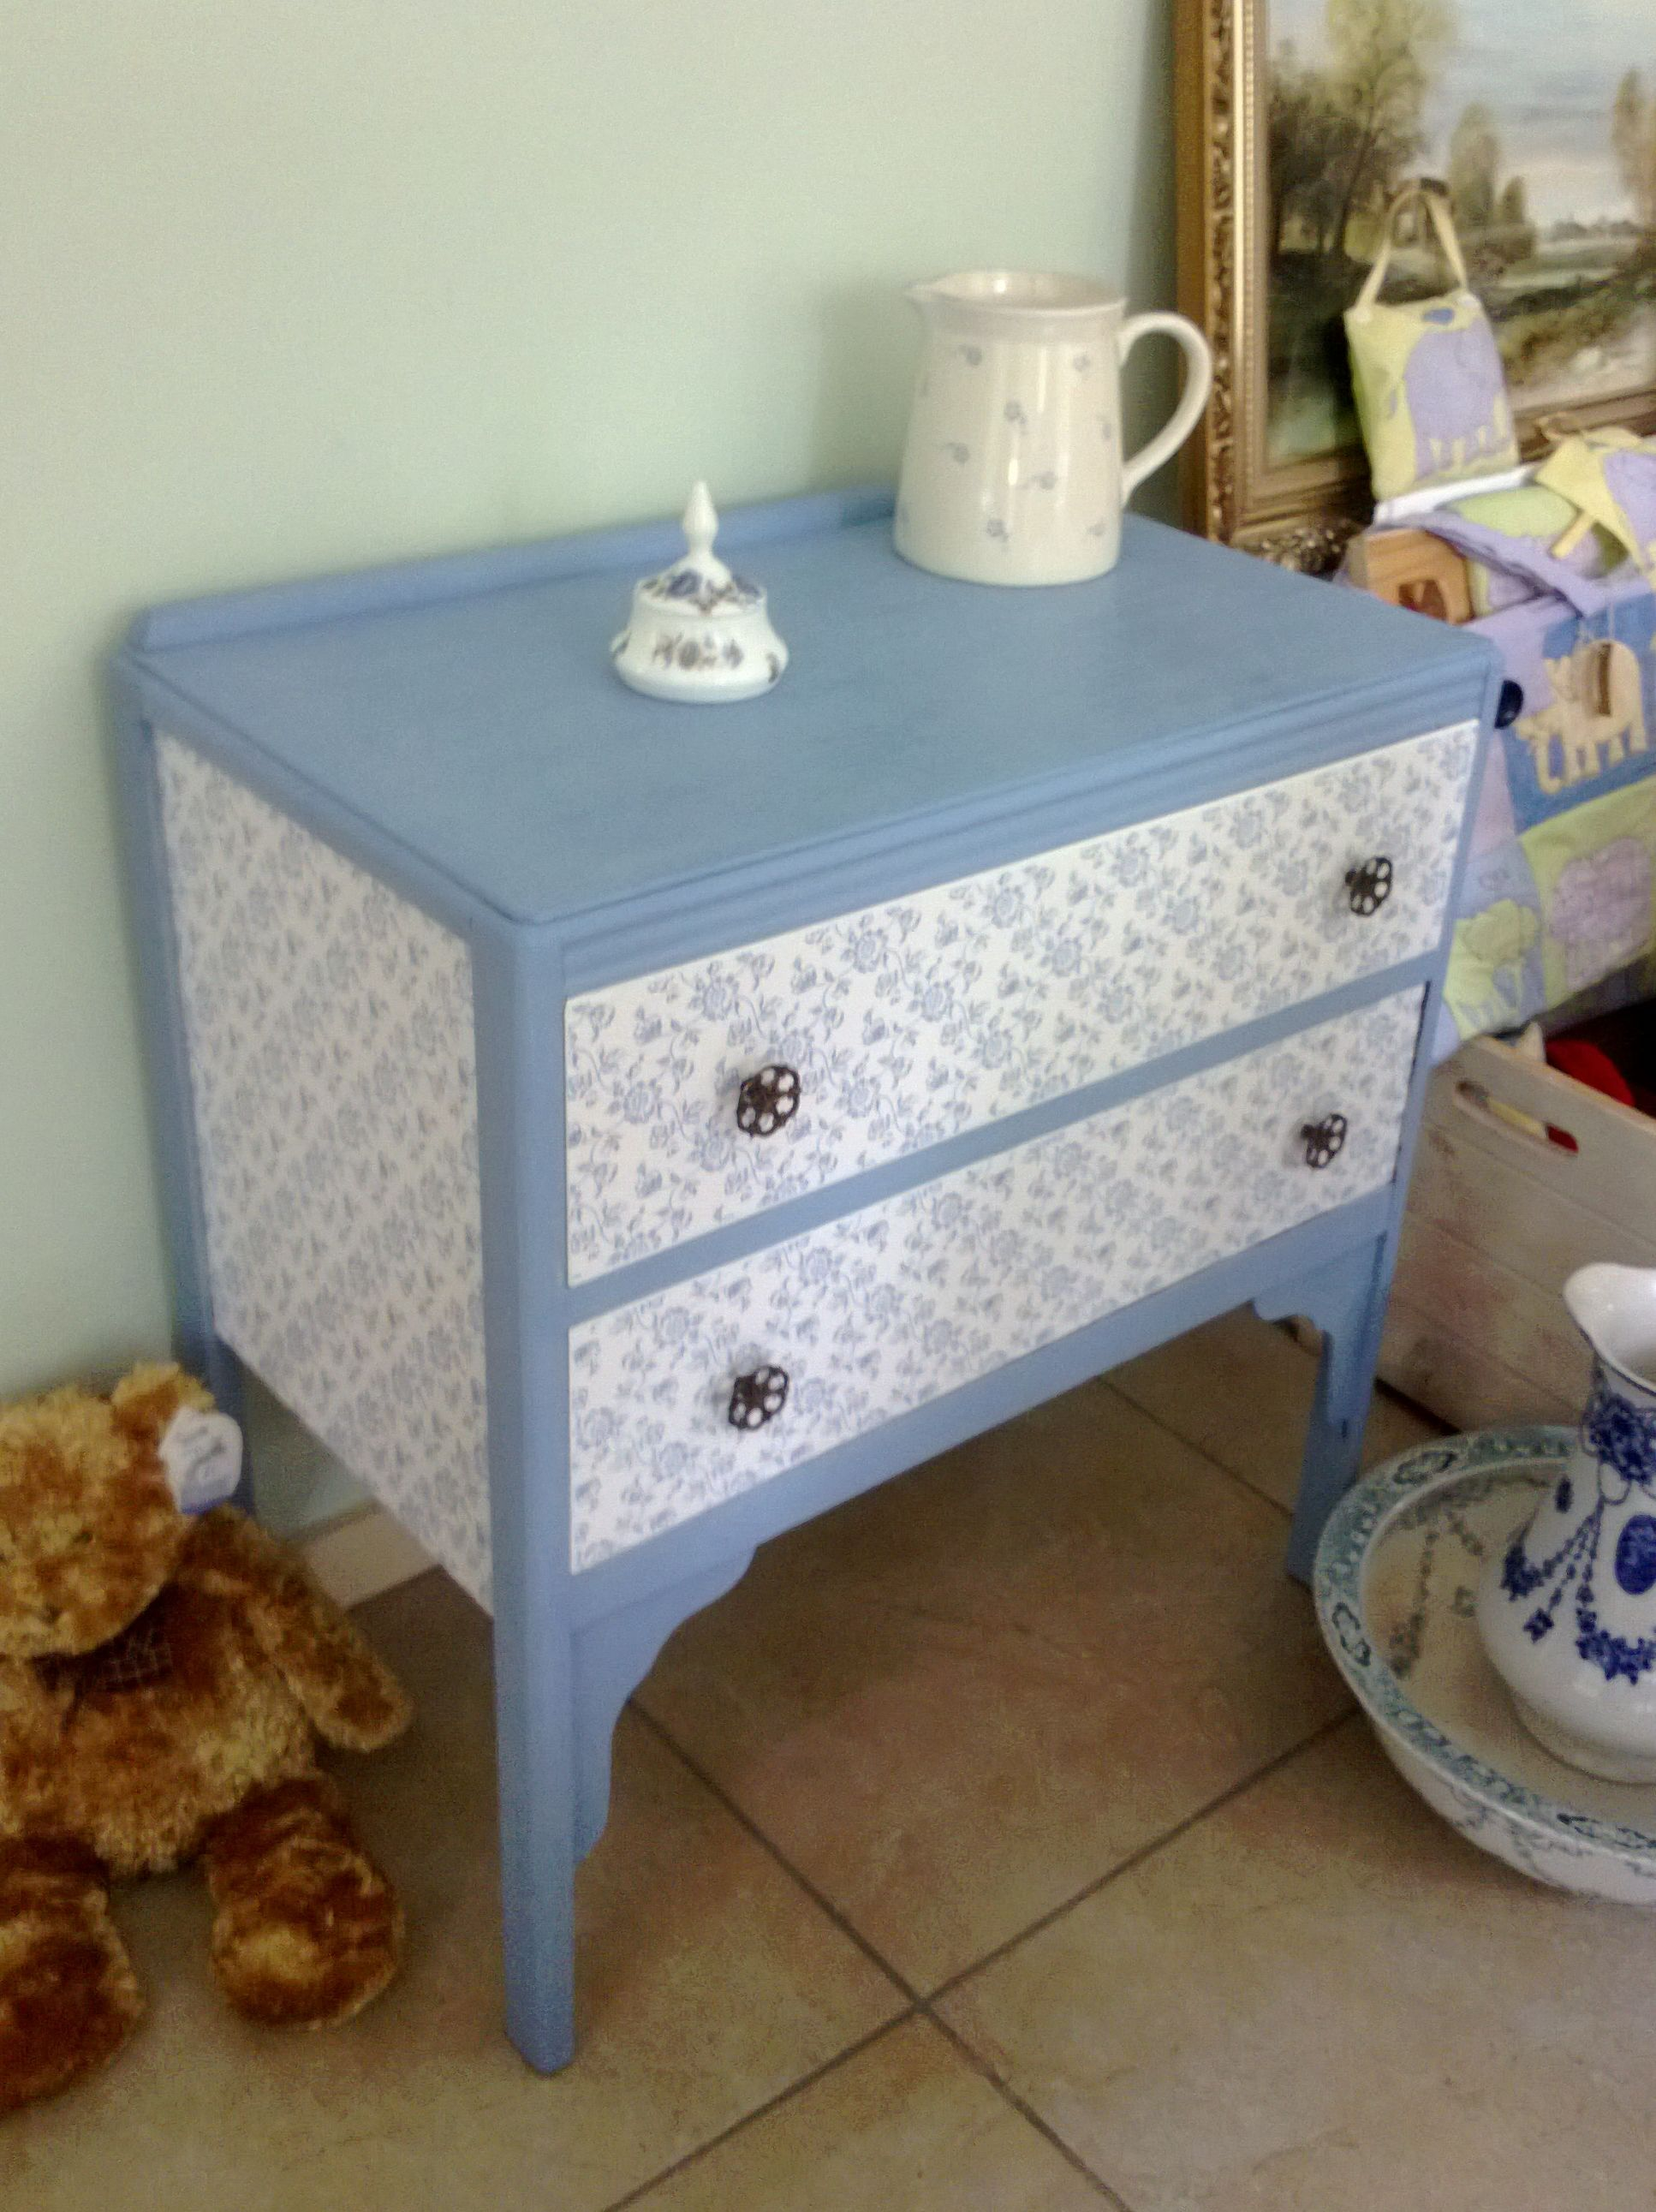 Very Pretty Vintage Dresser By Every One Unique Facebook Com Every1unique In Northern Ireland Hand Painted Furniture Vintage Dressers Painted Furniture